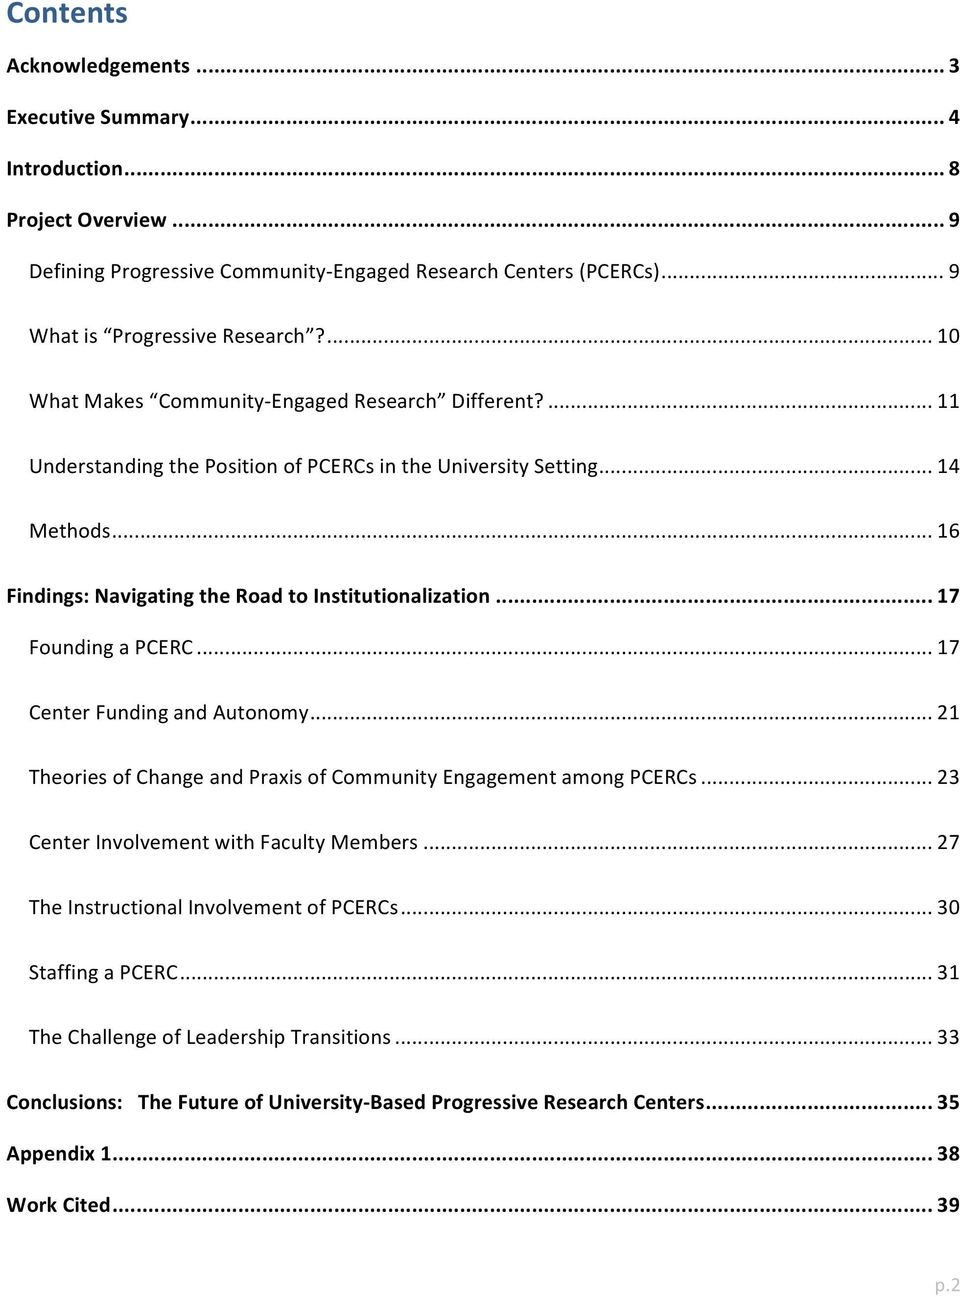 .. 17 Founding a PCERC... 17 Center Funding and Autonomy... 21 Theories of Change and Praxis of Community Engagement among PCERCs... 23 Center Involvement with Faculty Members.